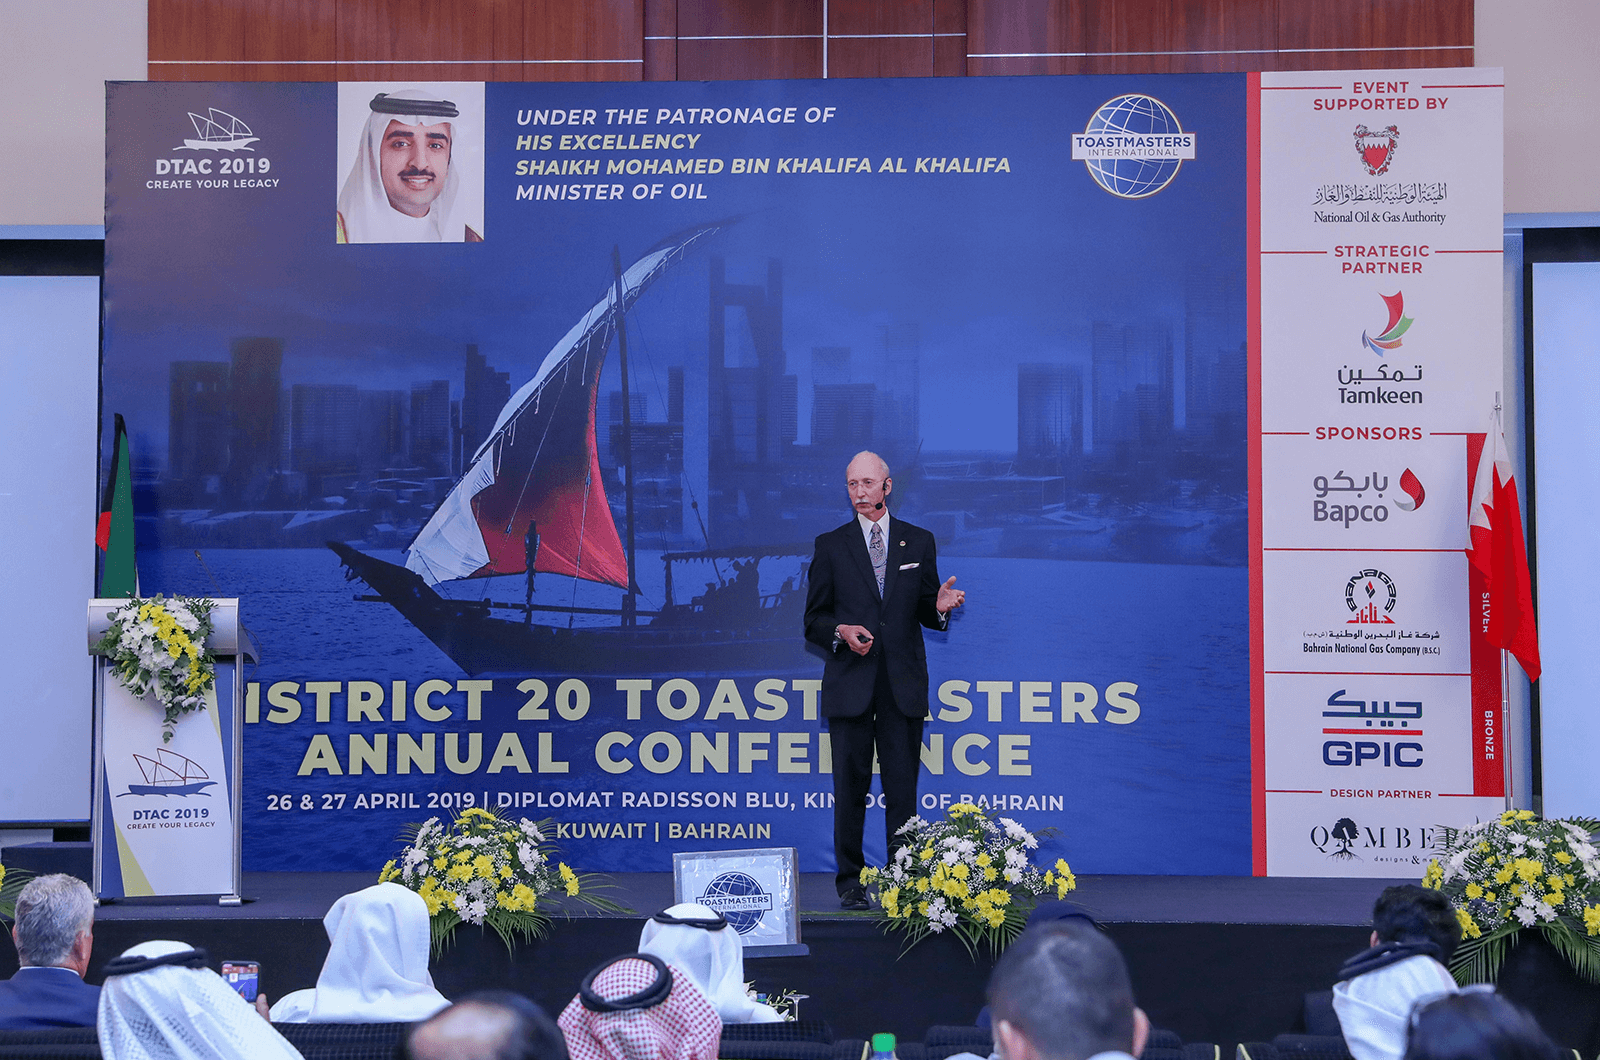 Peck speaks to members of District 20 at their annual conference in 2019.